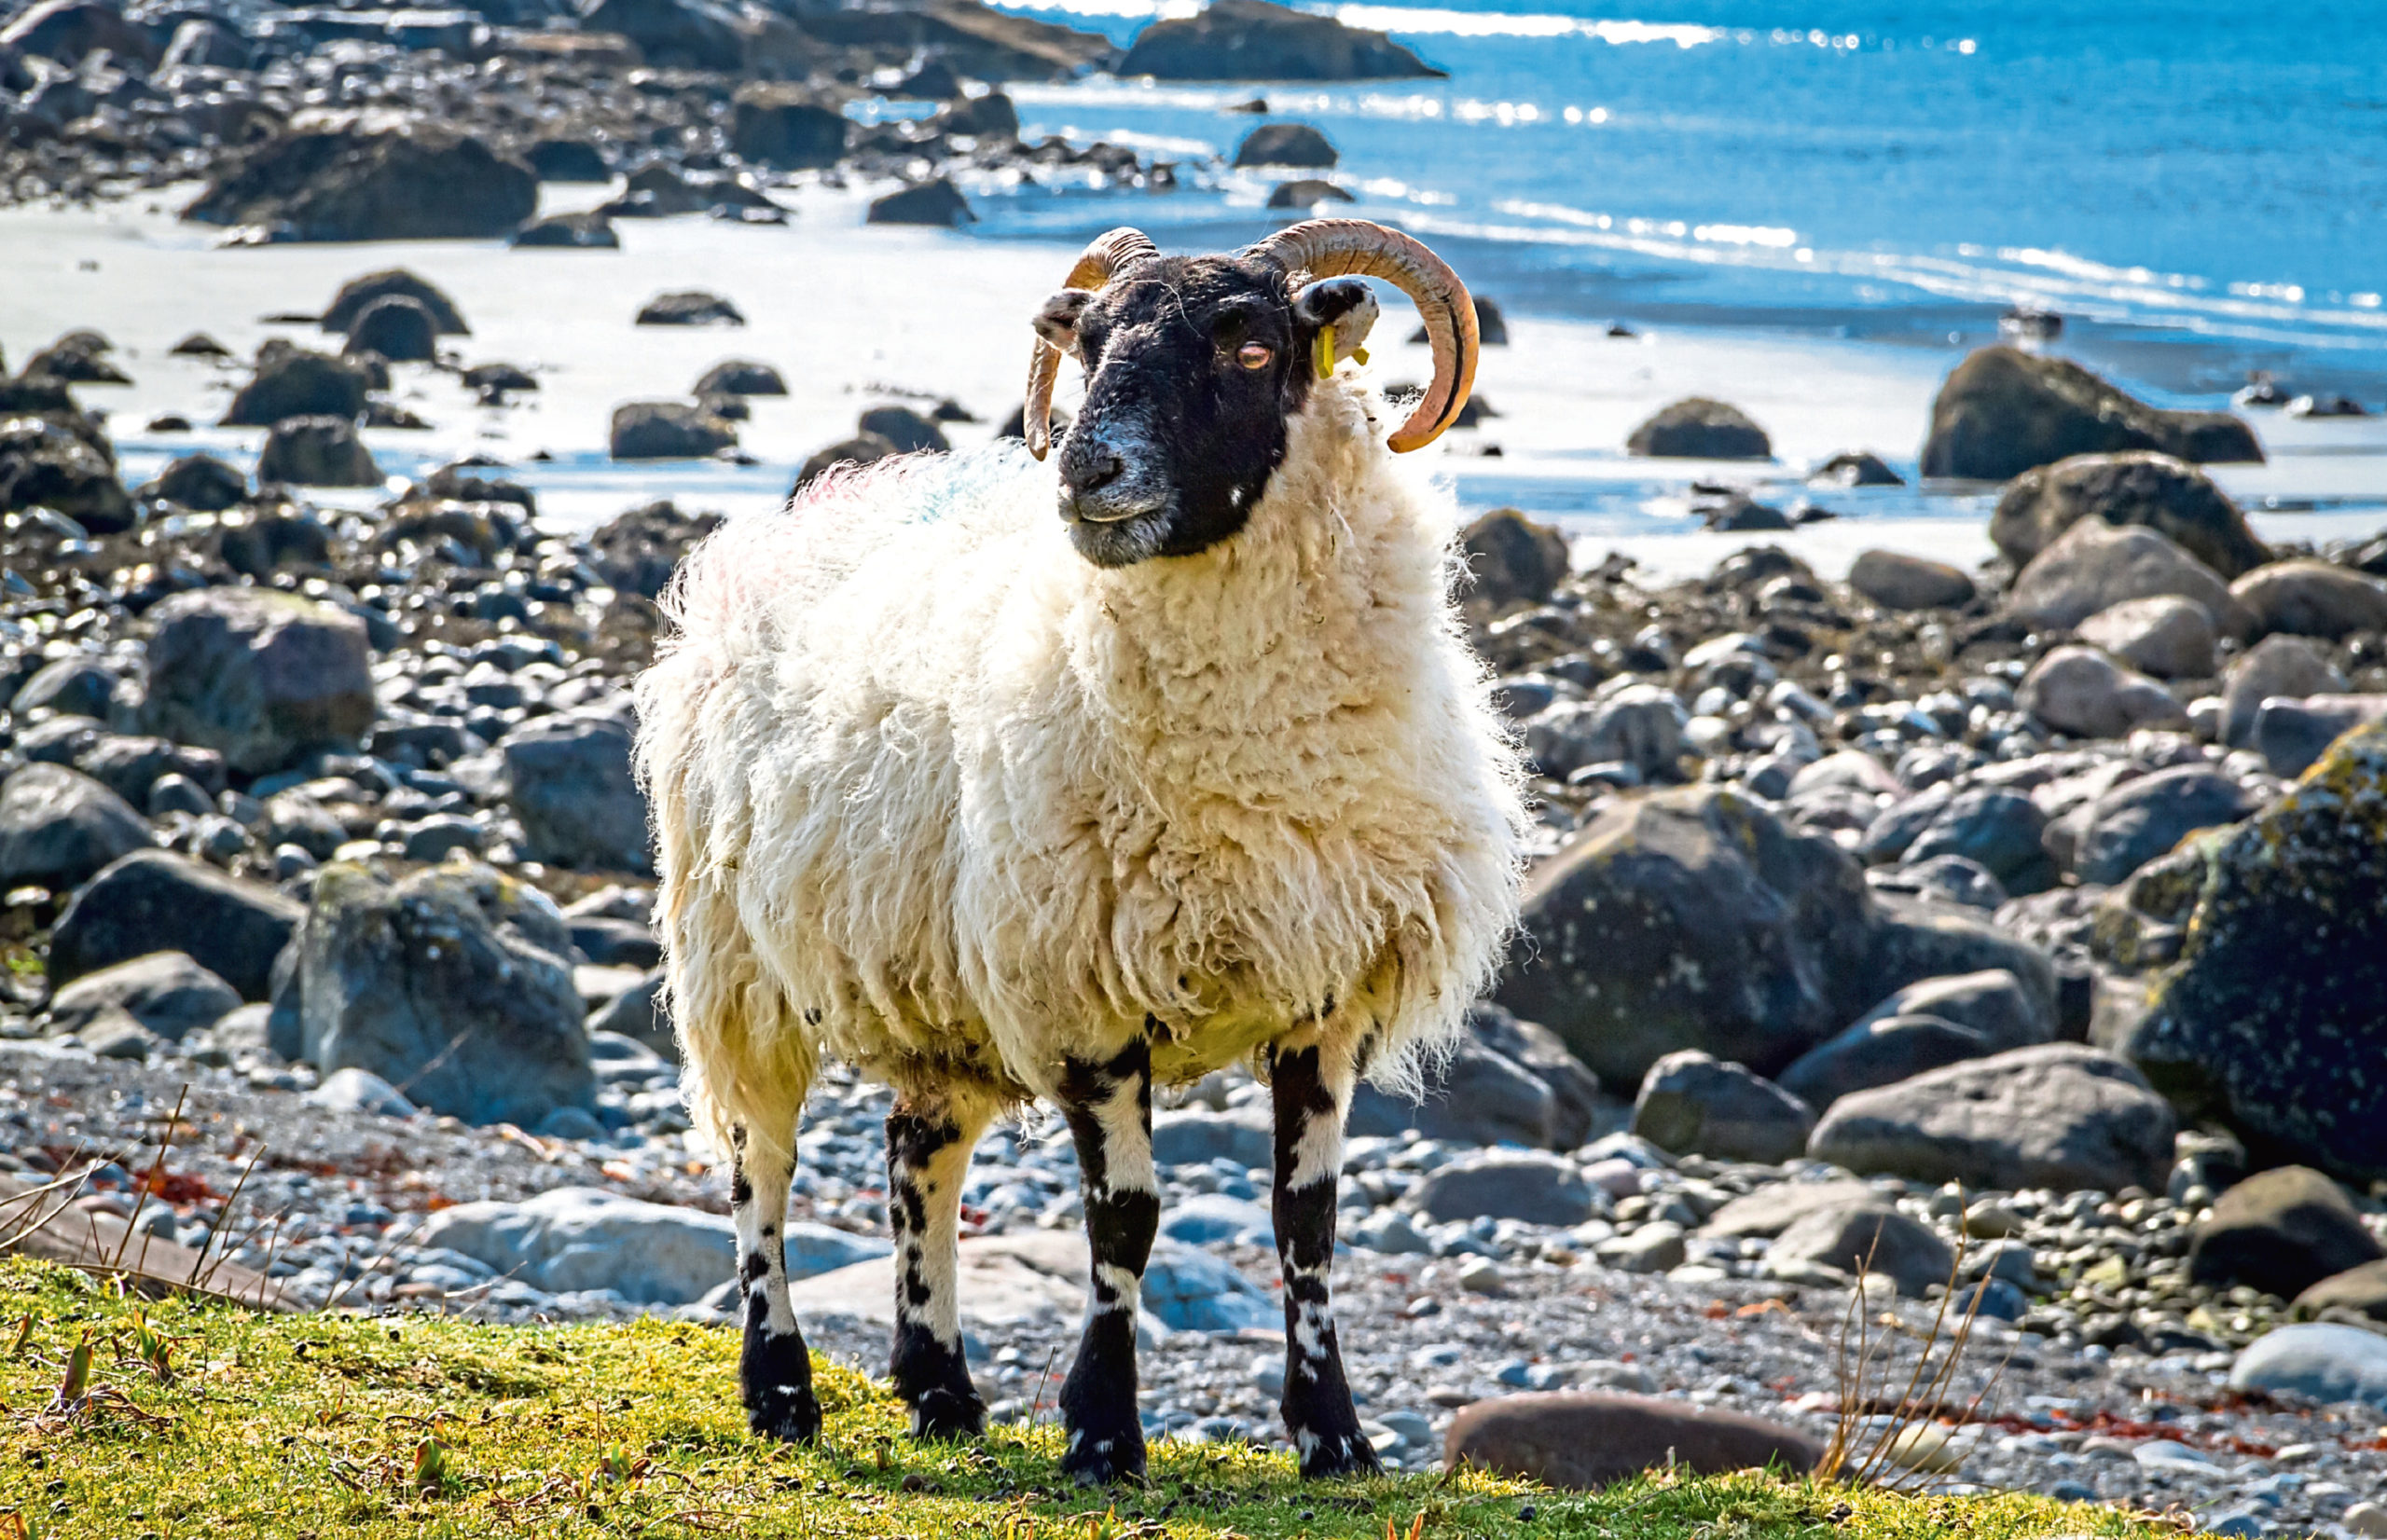 The Scottish Crofting Federation says its members are feeling the impact of the current lockdown.